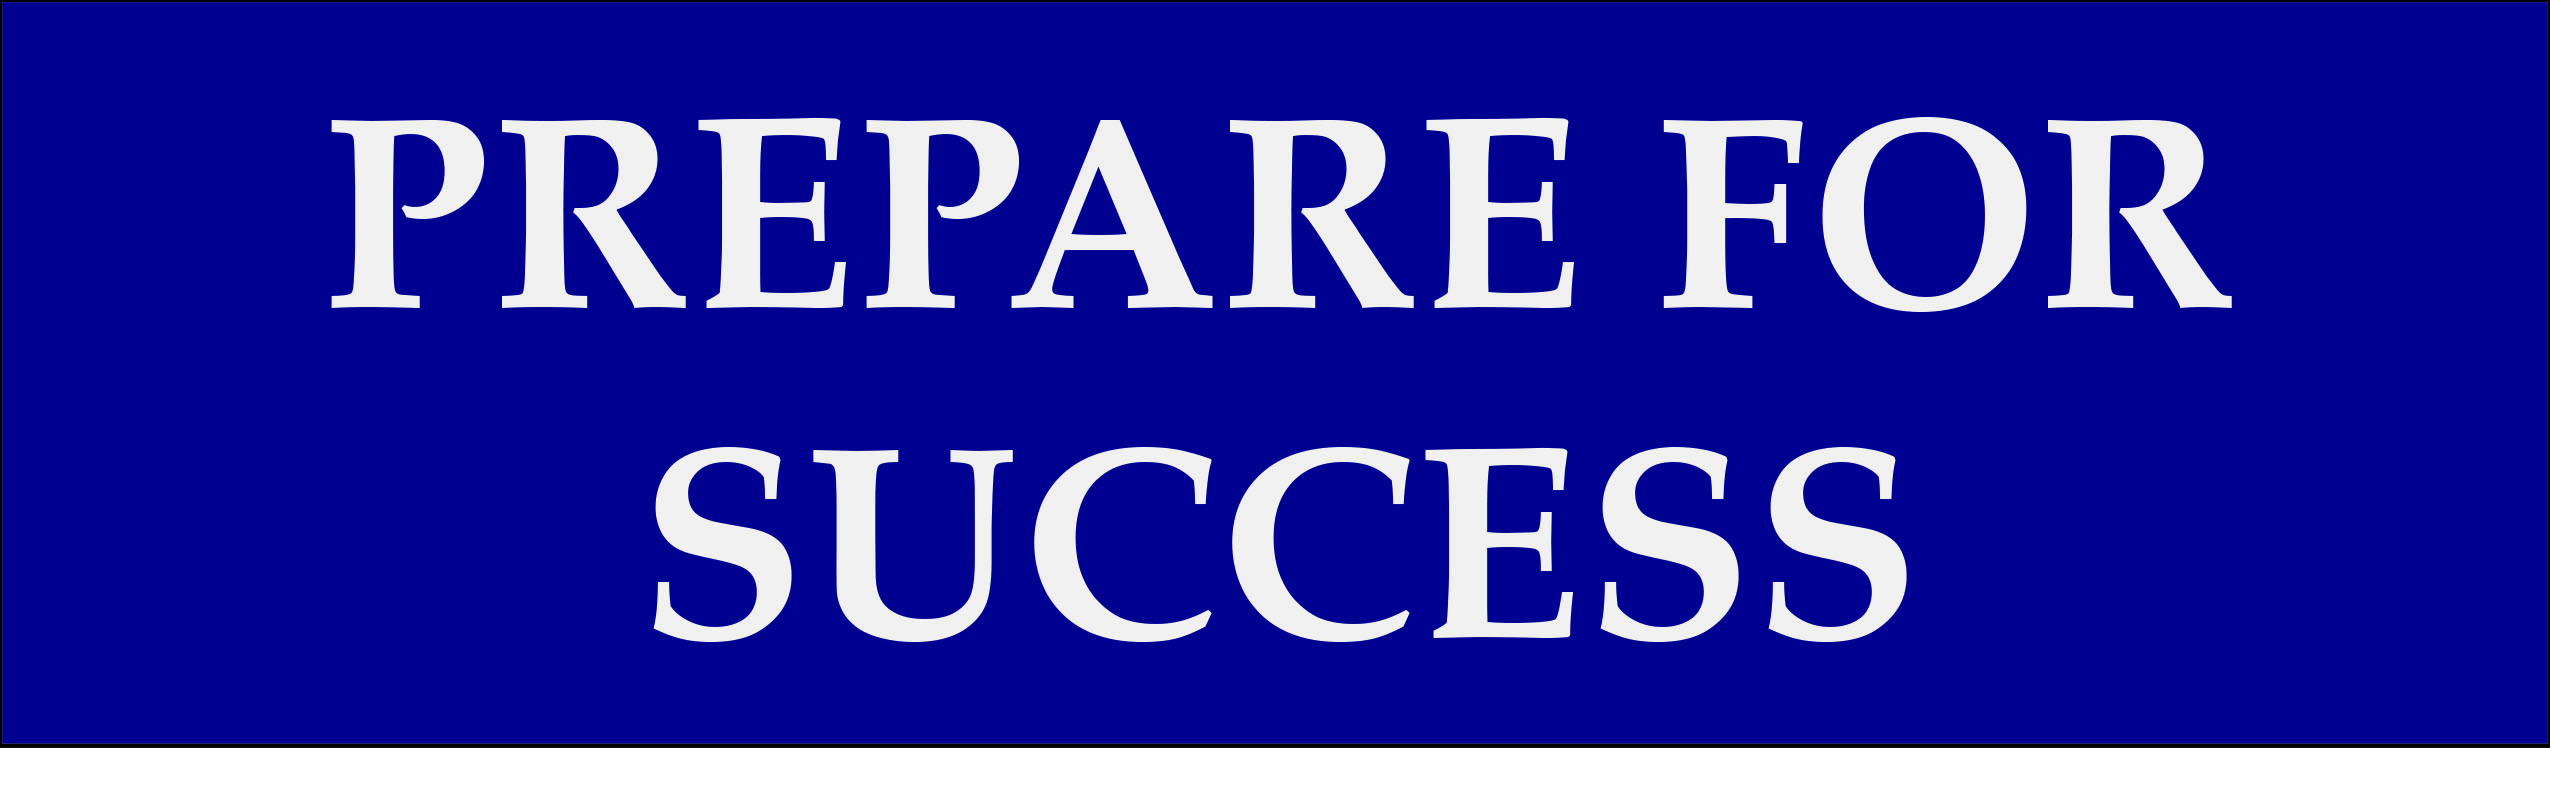 Image result for prepare for success